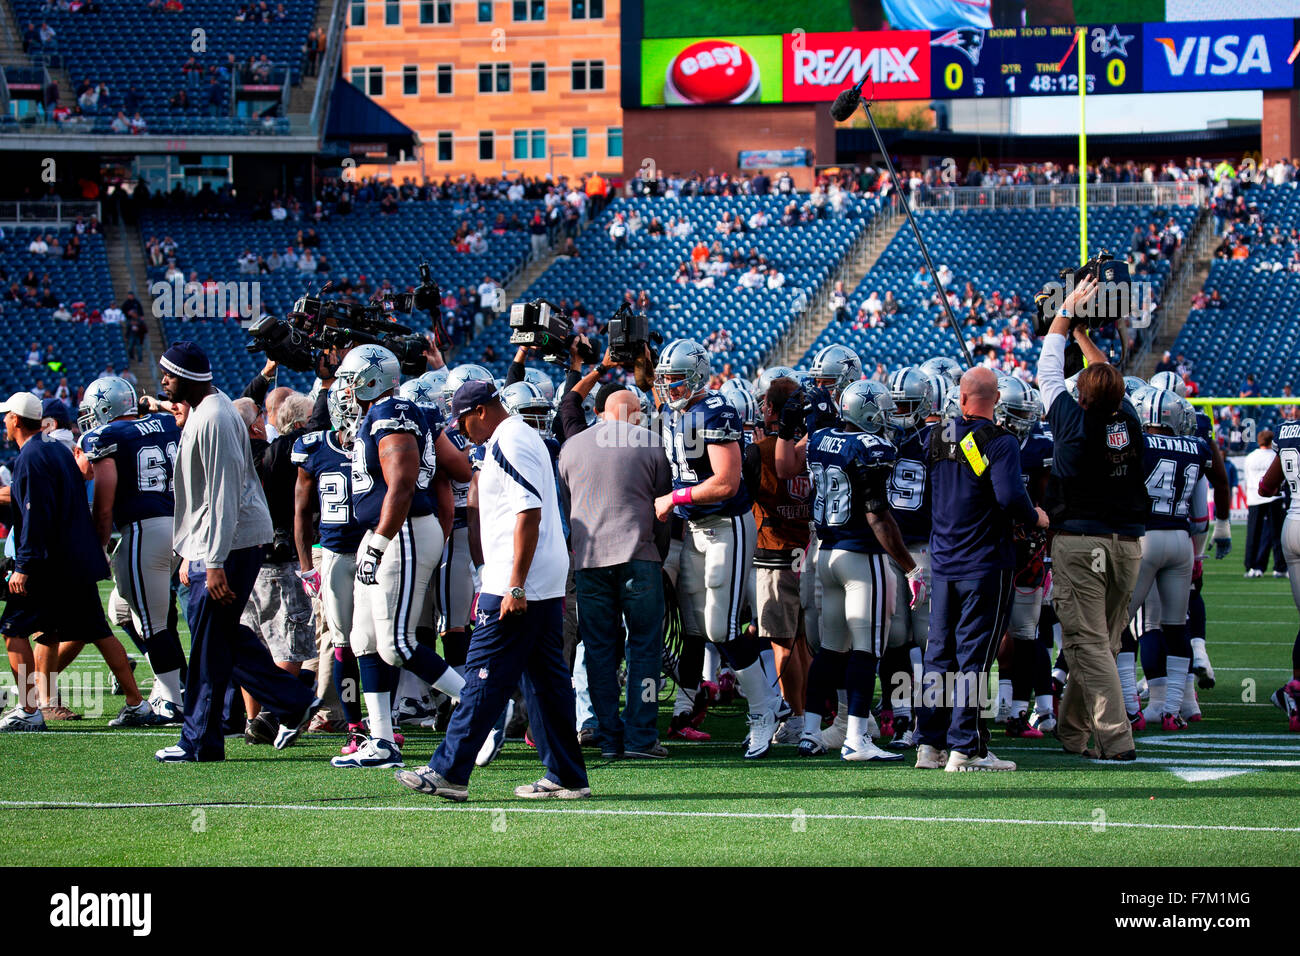 Quarterback Tom Brady, #12, takes hike at Gillette Stadium, the home of Super Bowl champs, New England Patriots, - Stock Image